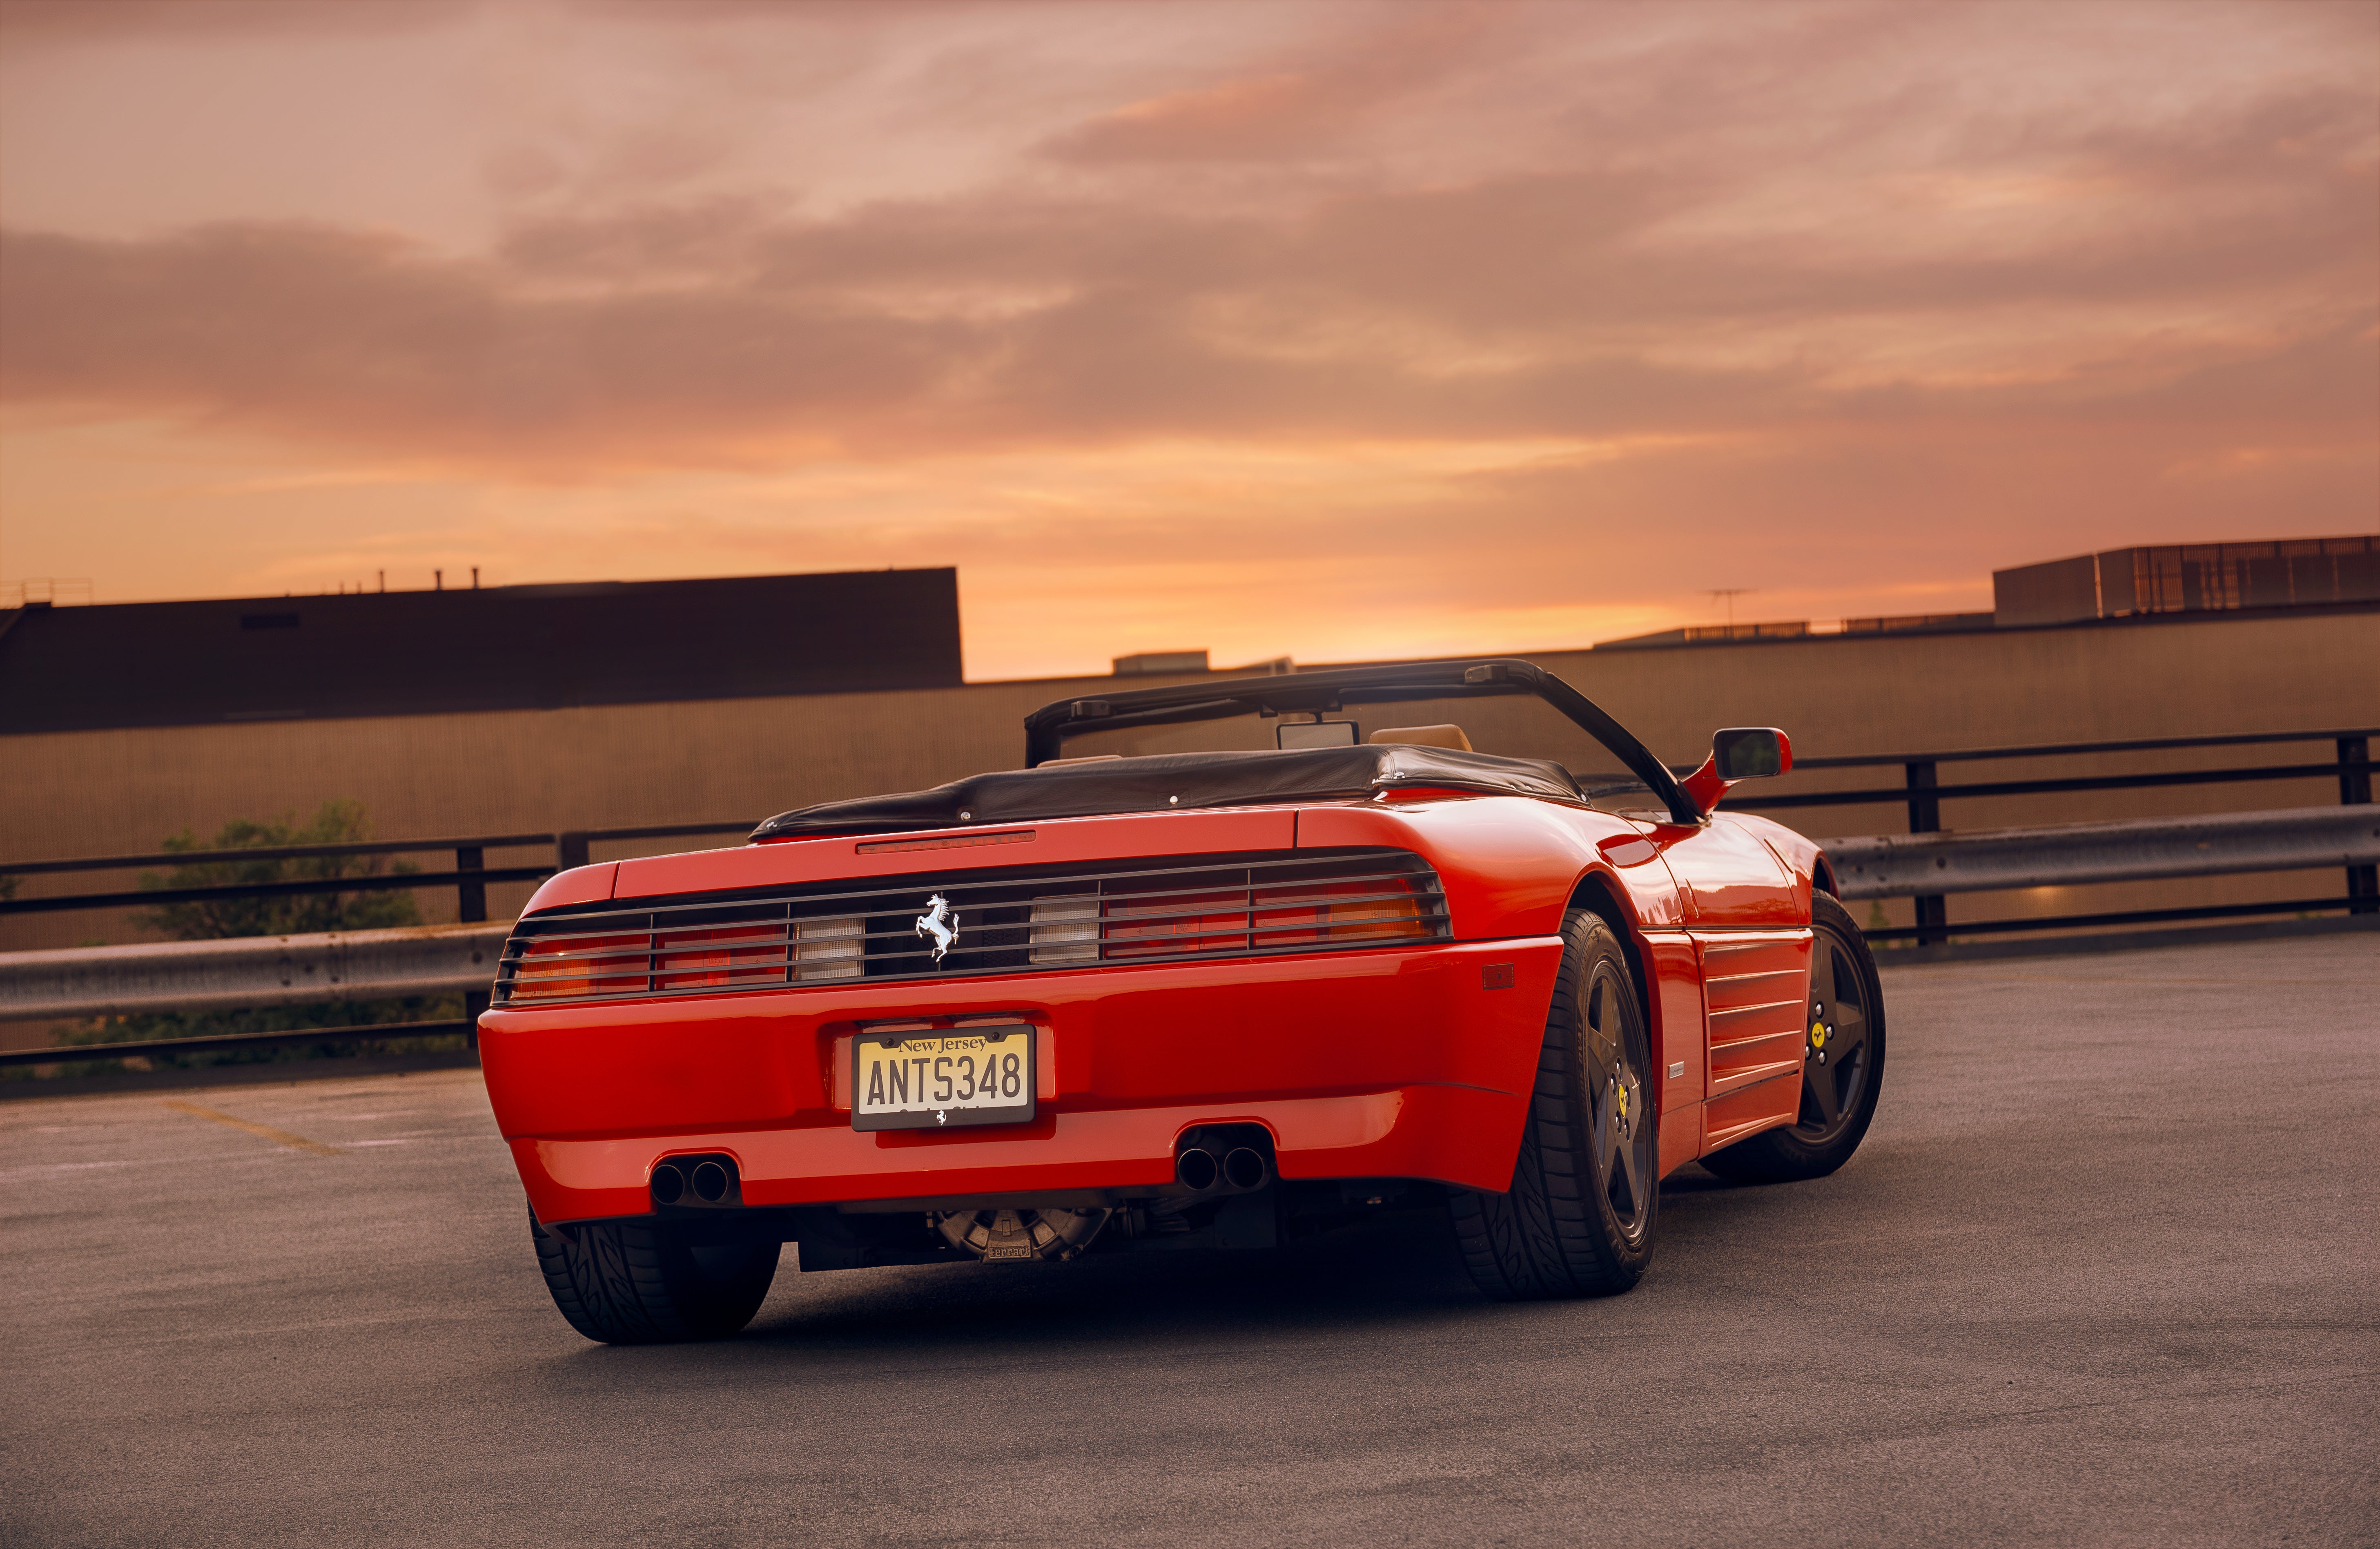 Your Ridiculously Awesome Ferrari 348 Spider Wallpaper Is Here